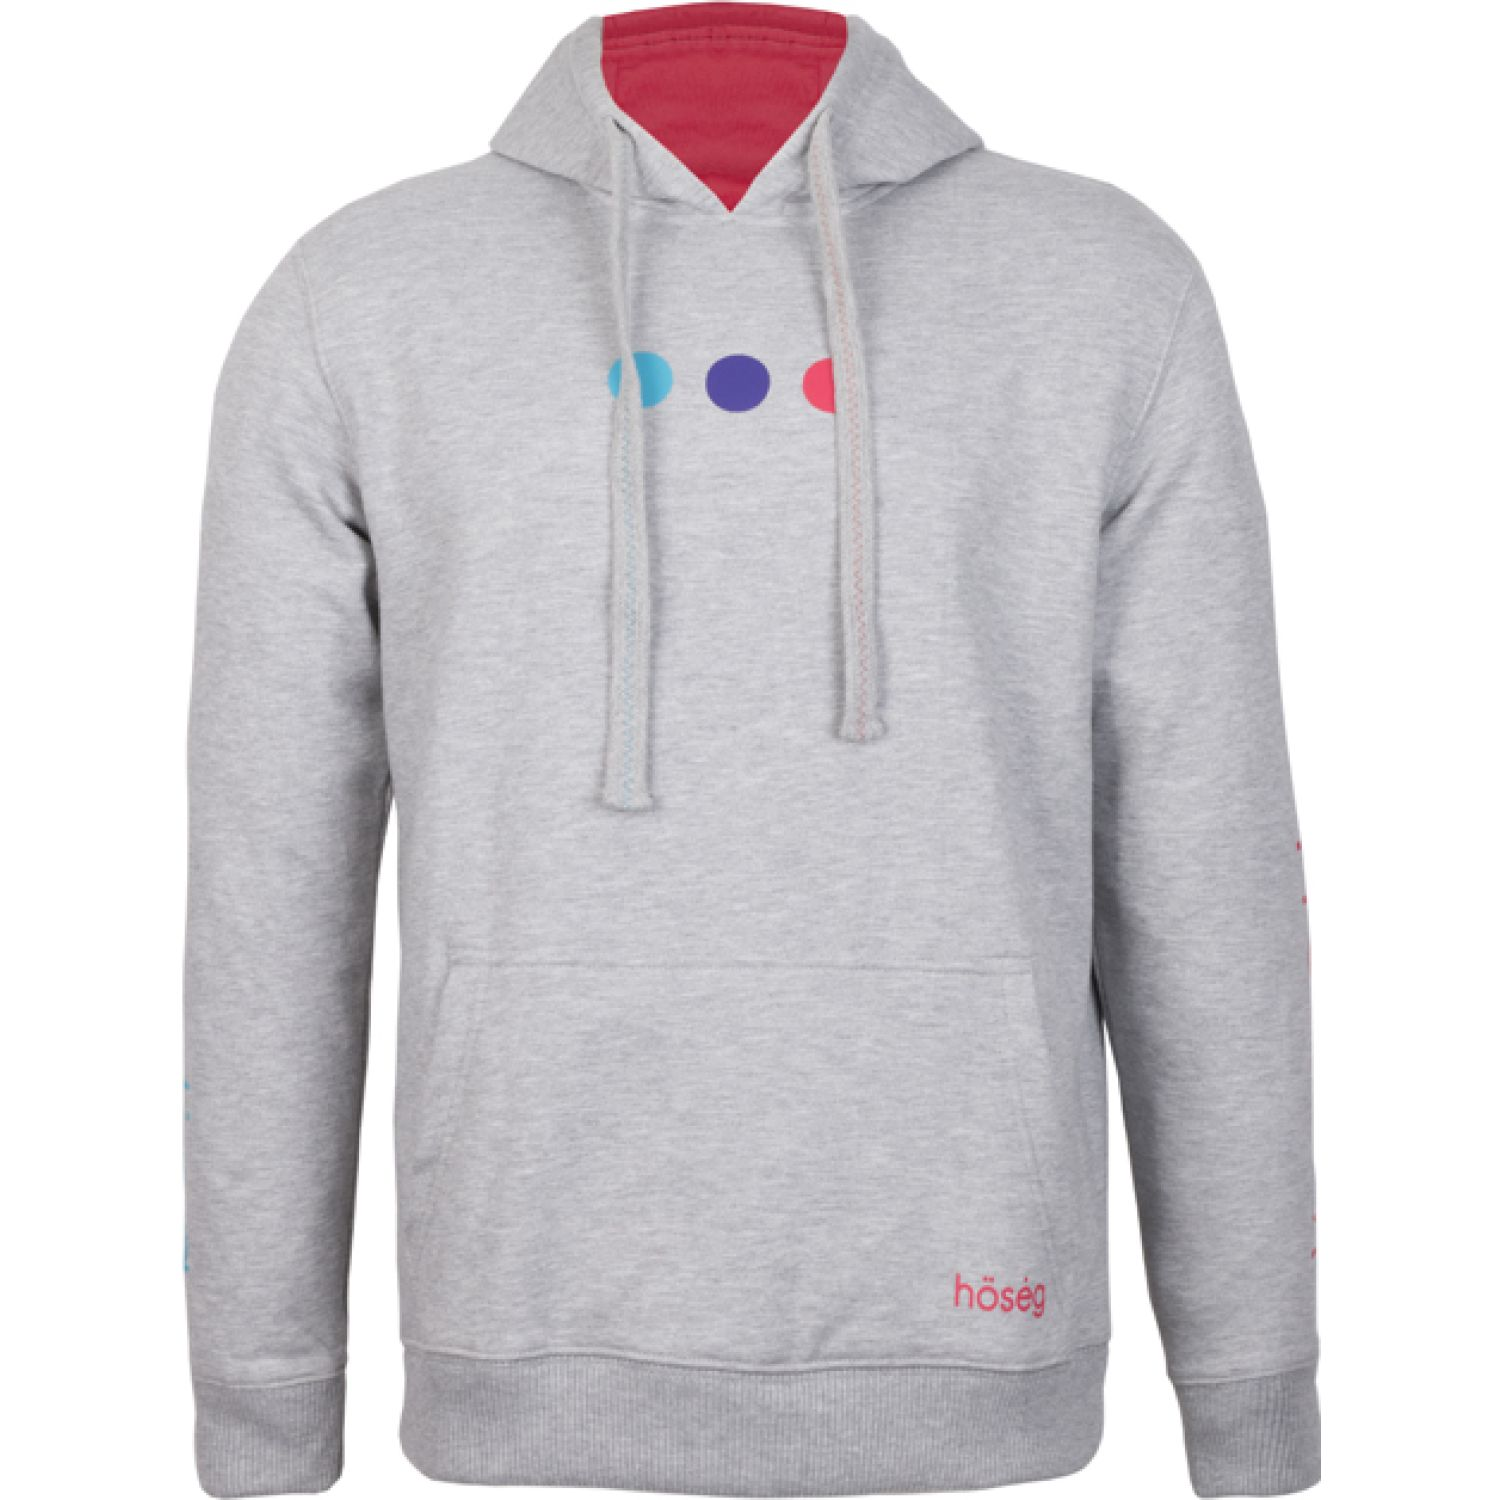 Hoseg hoodie dots hombre MELANGE Hoodies y Sweaters Fashion